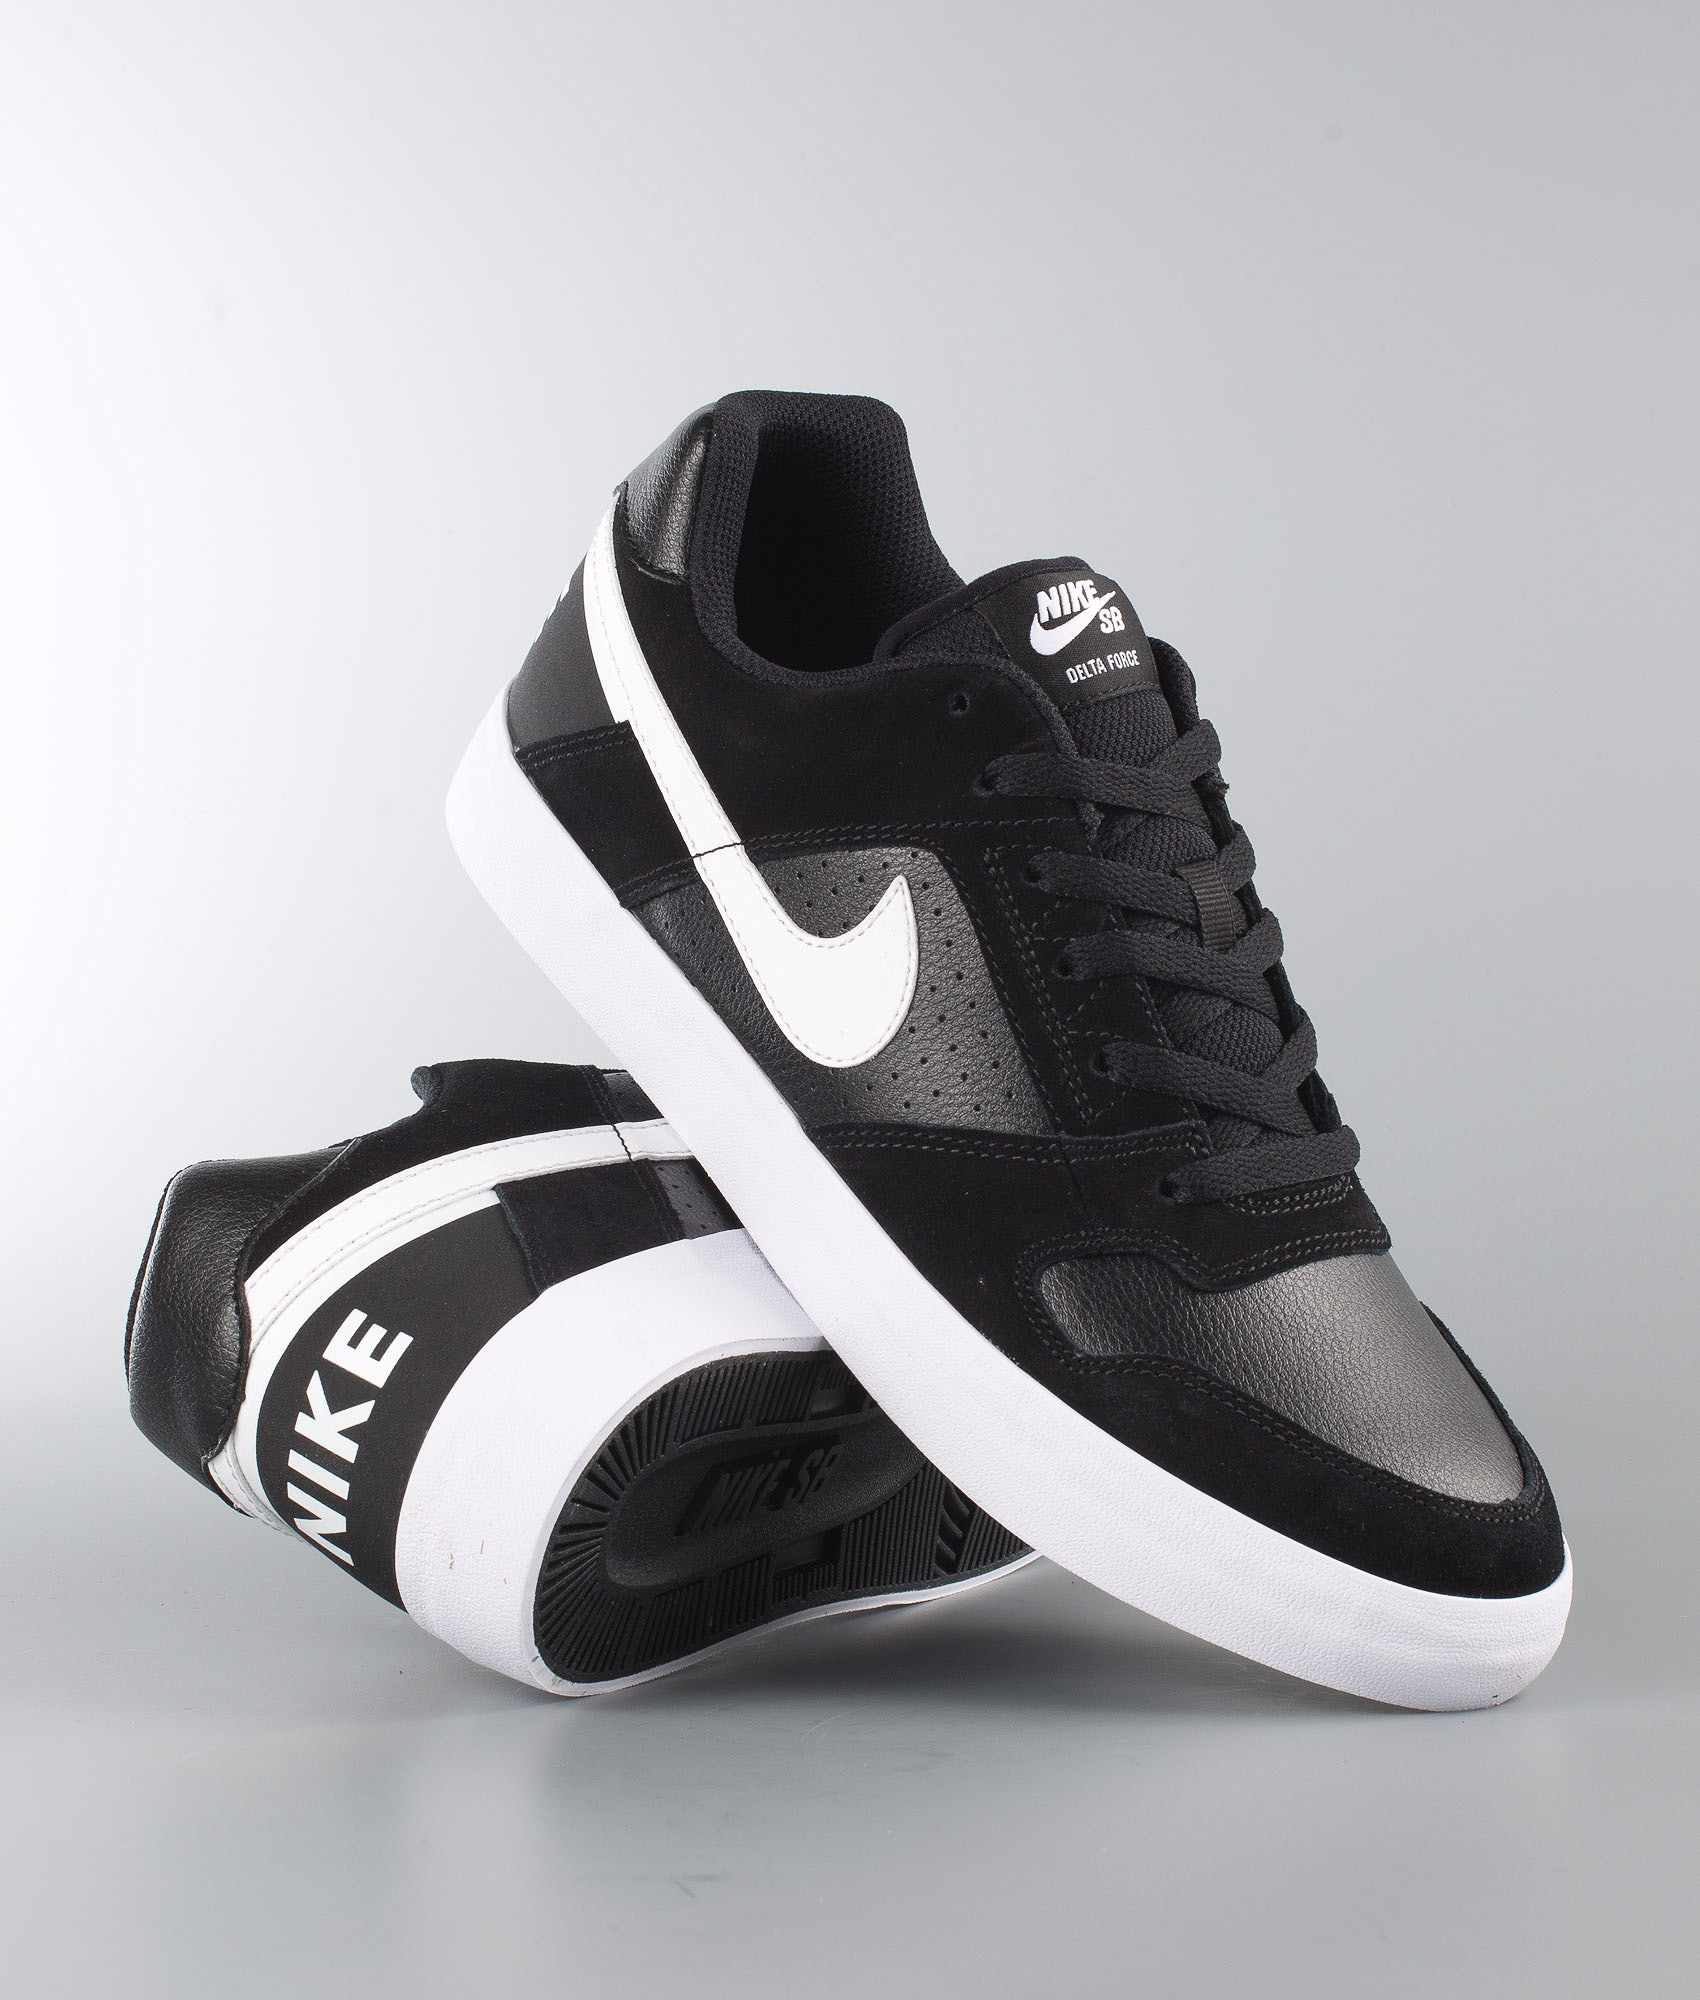 9de612d258a Nike Delta Force Vulc Shoes Black White-Anthracite-White - Ridestore.com